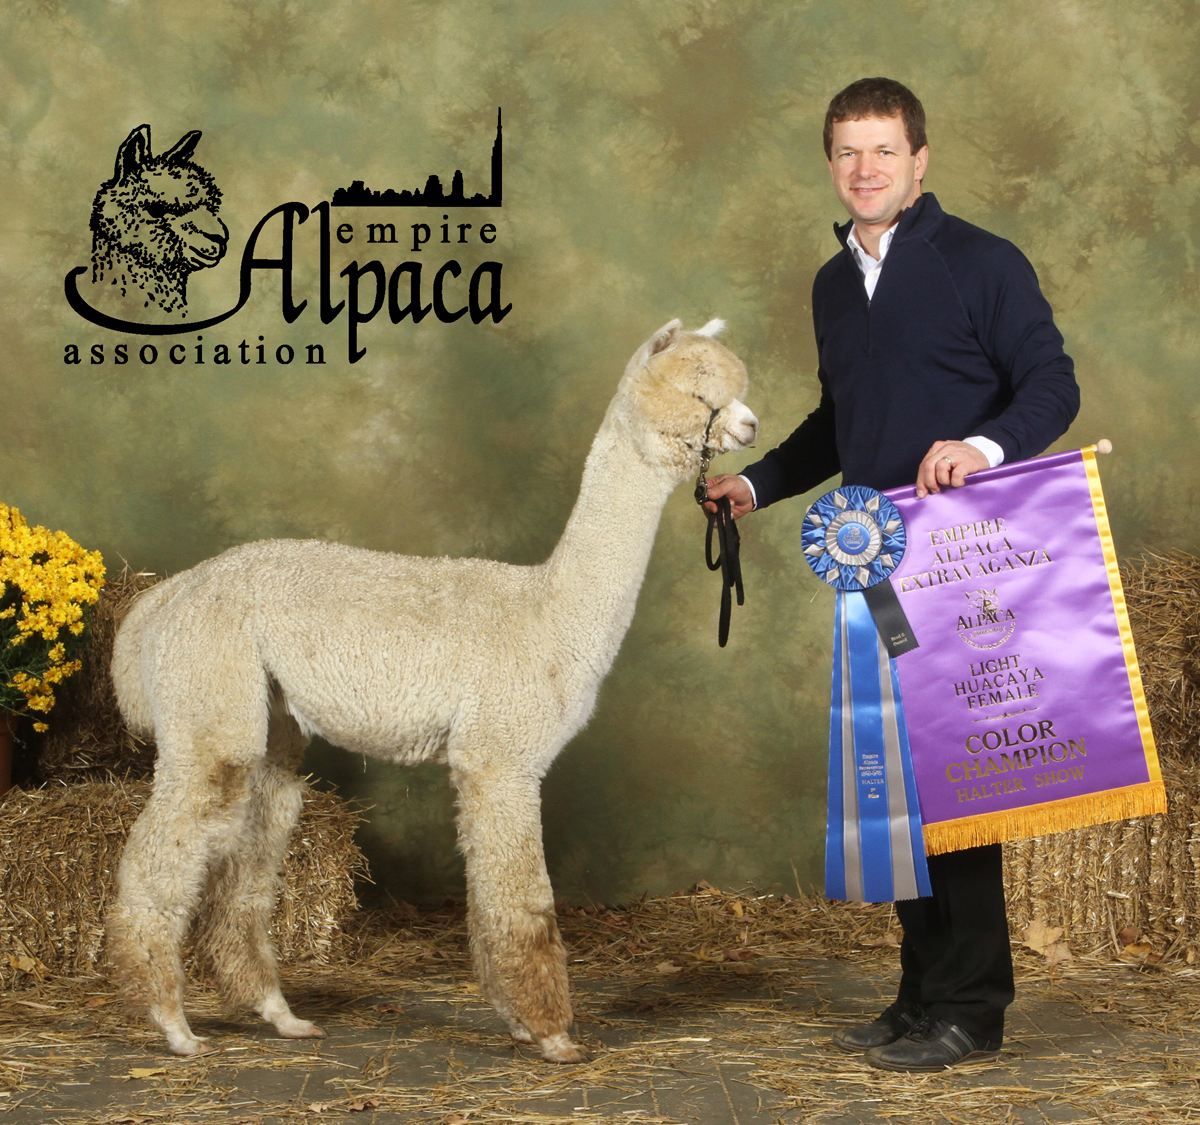 CCNF Caipirinha with one of her 2 Championship banners from the light female color groups at The Showtacular.